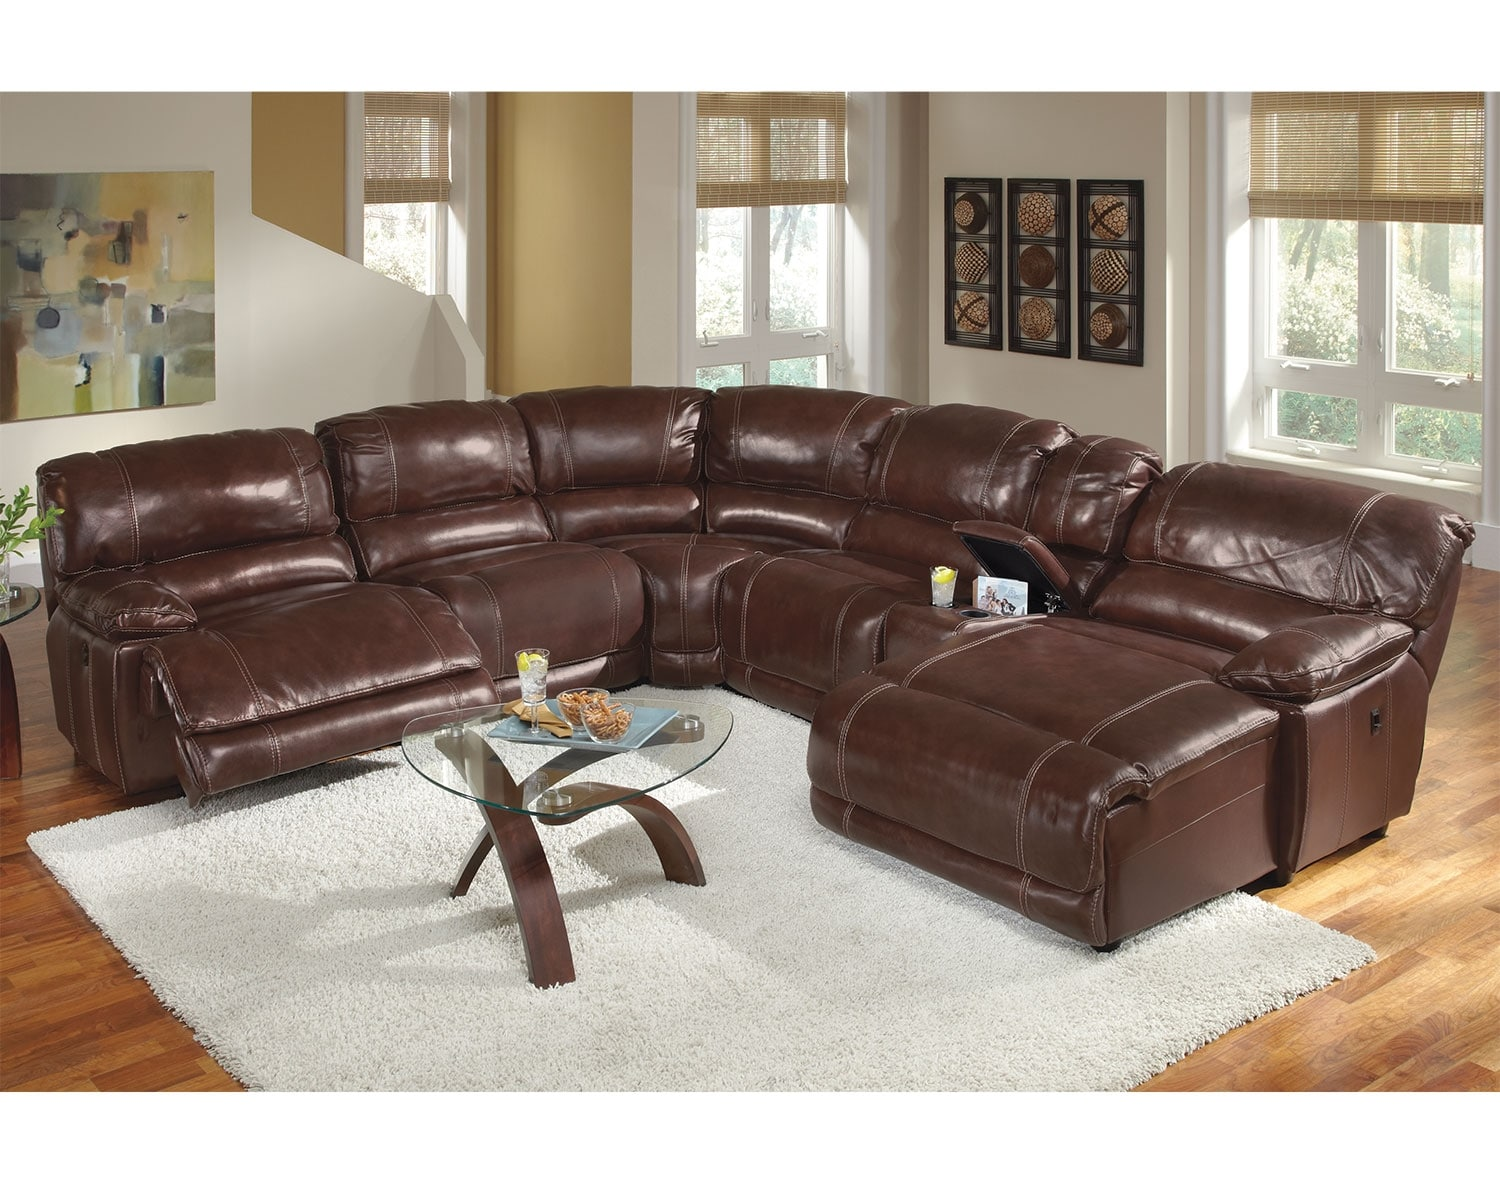 awesome sears for city recliners your favorite enjoy of furniture value recliner sofa with cozy